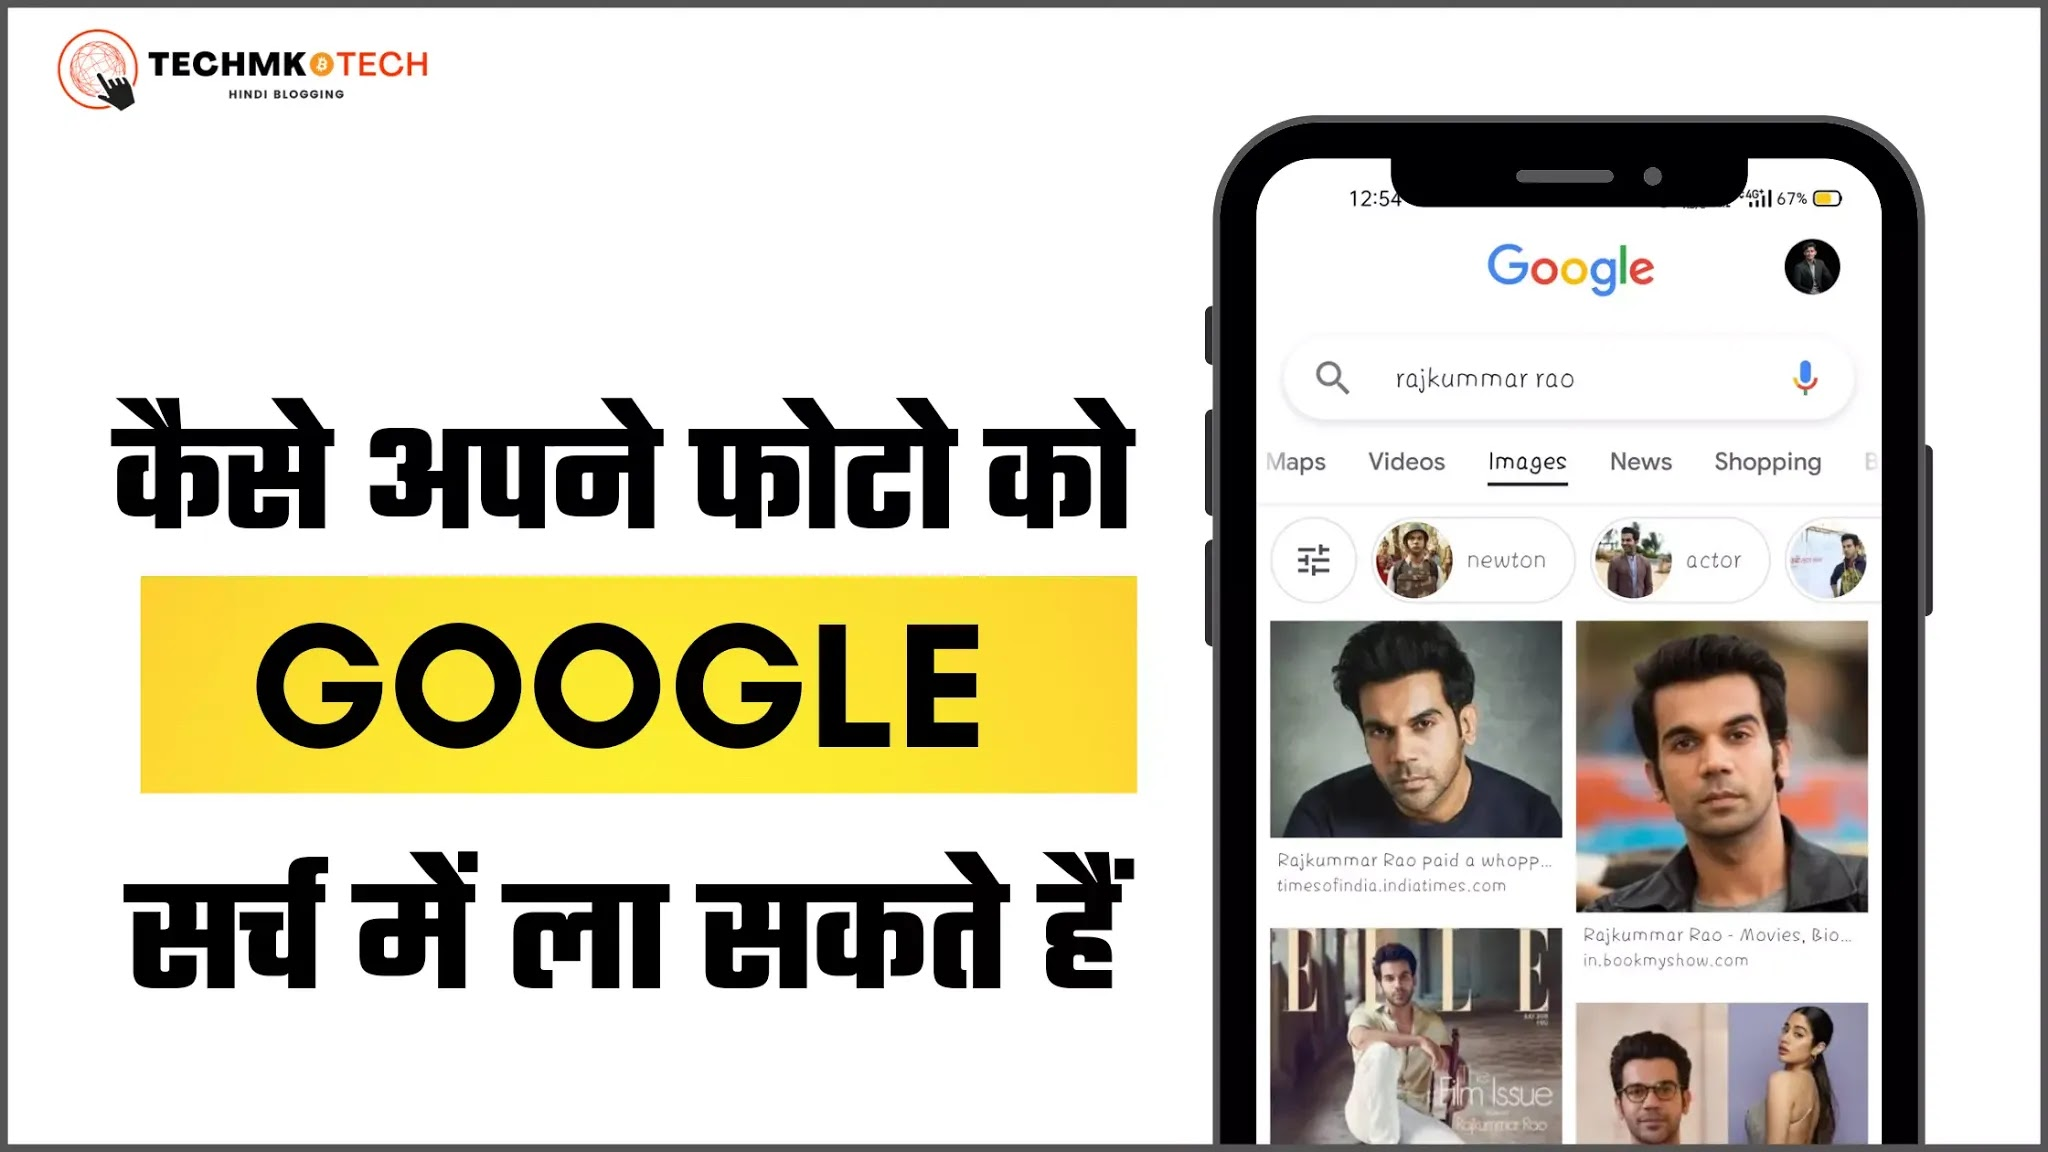 How to upload photo on Google from mobile., Manish+Kumar,